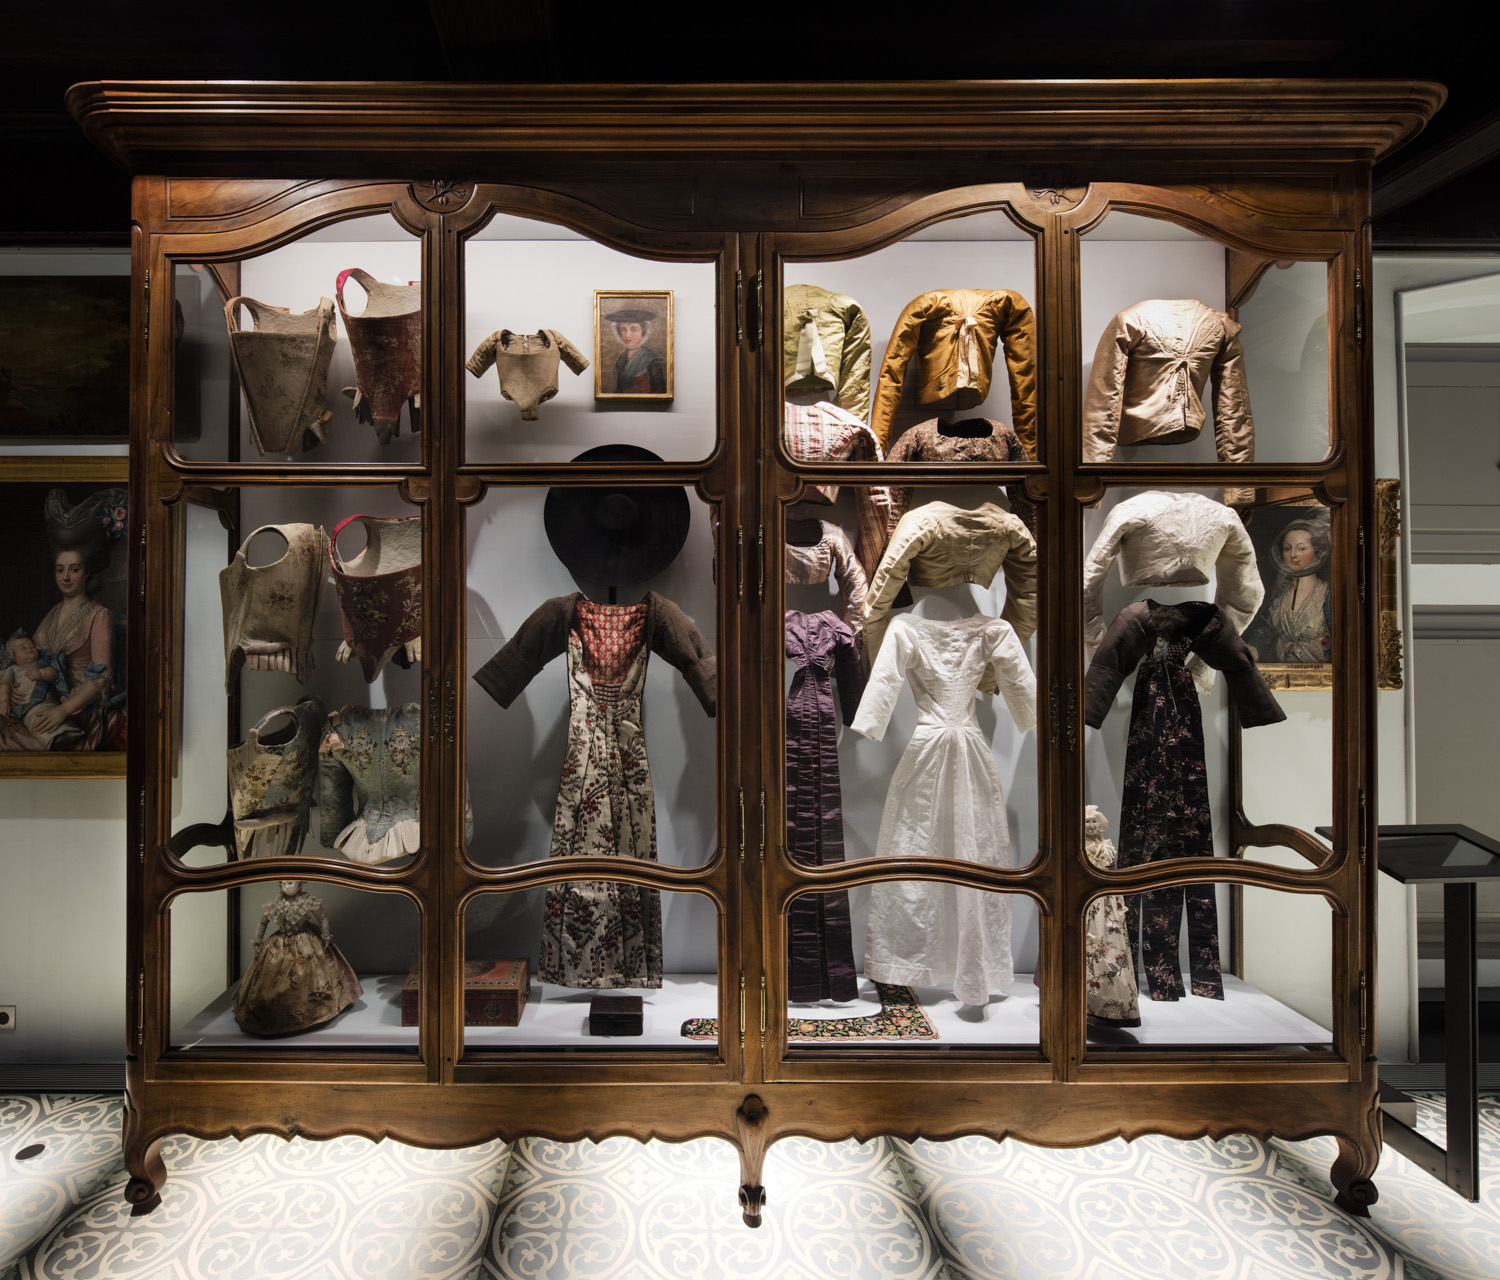 Museon Arlaten, Display case in the 18th-century costume room, photo by Sébastien Normand